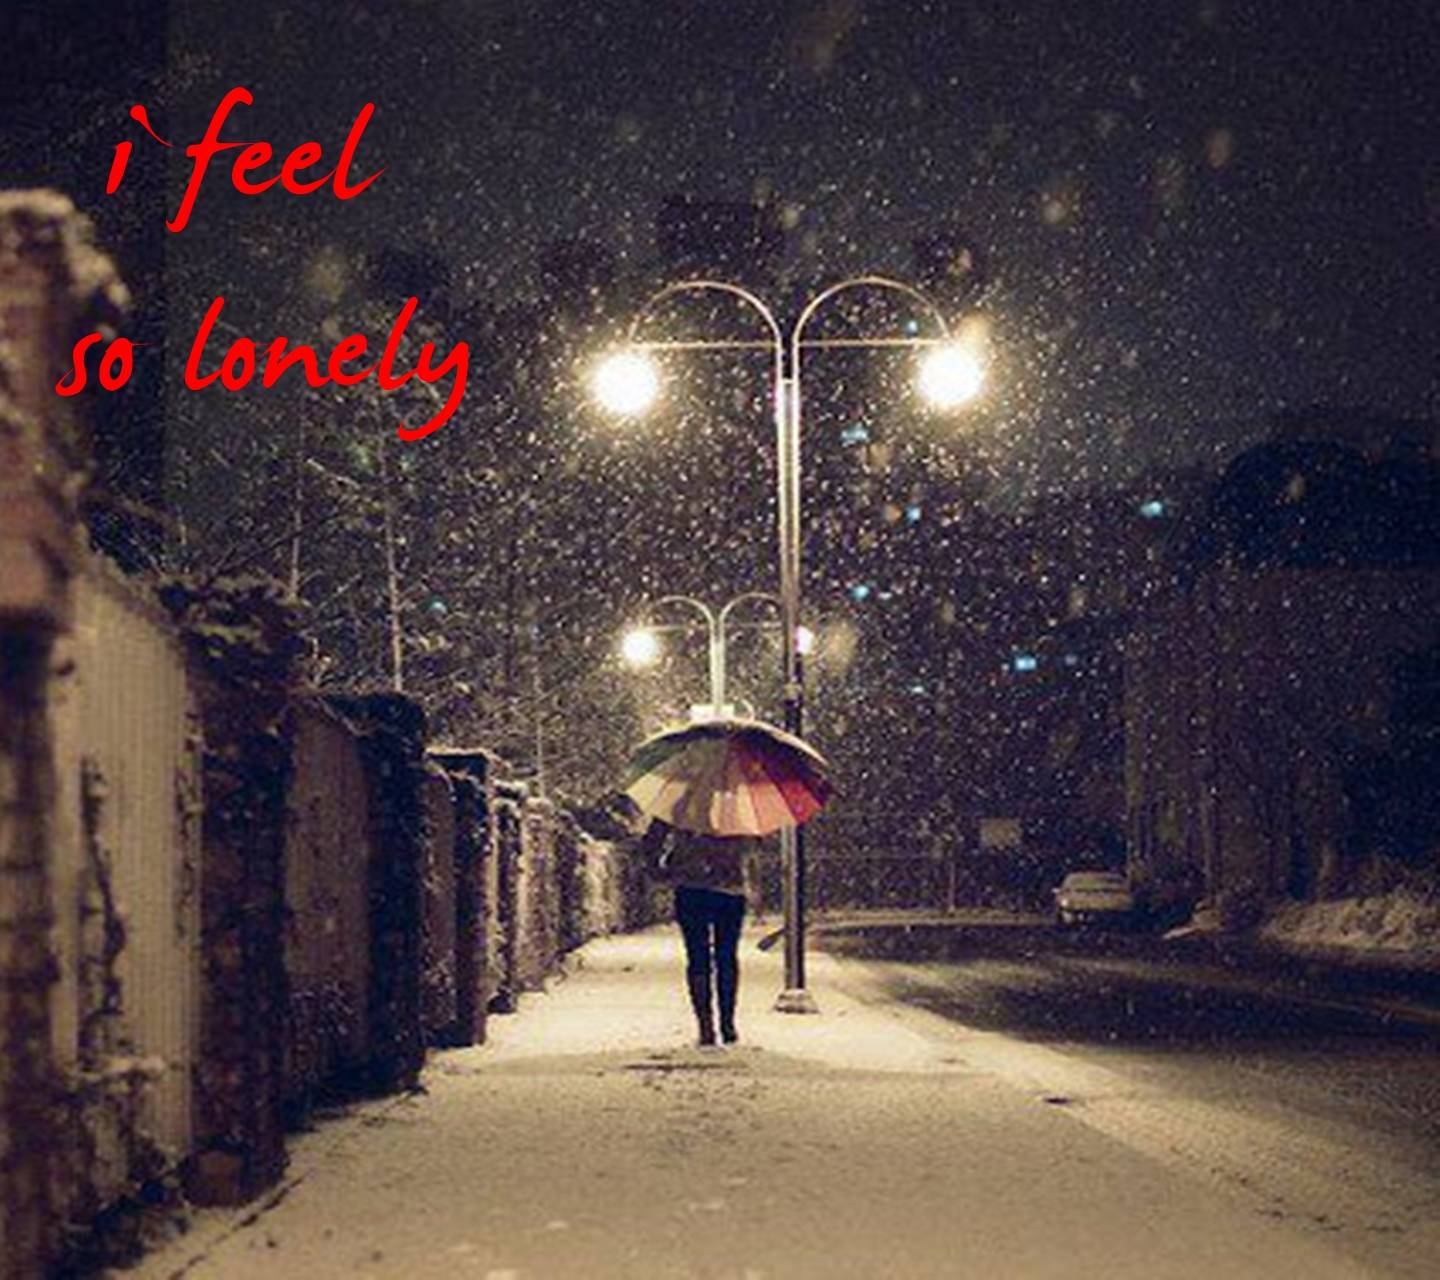 I Feel So Lonely